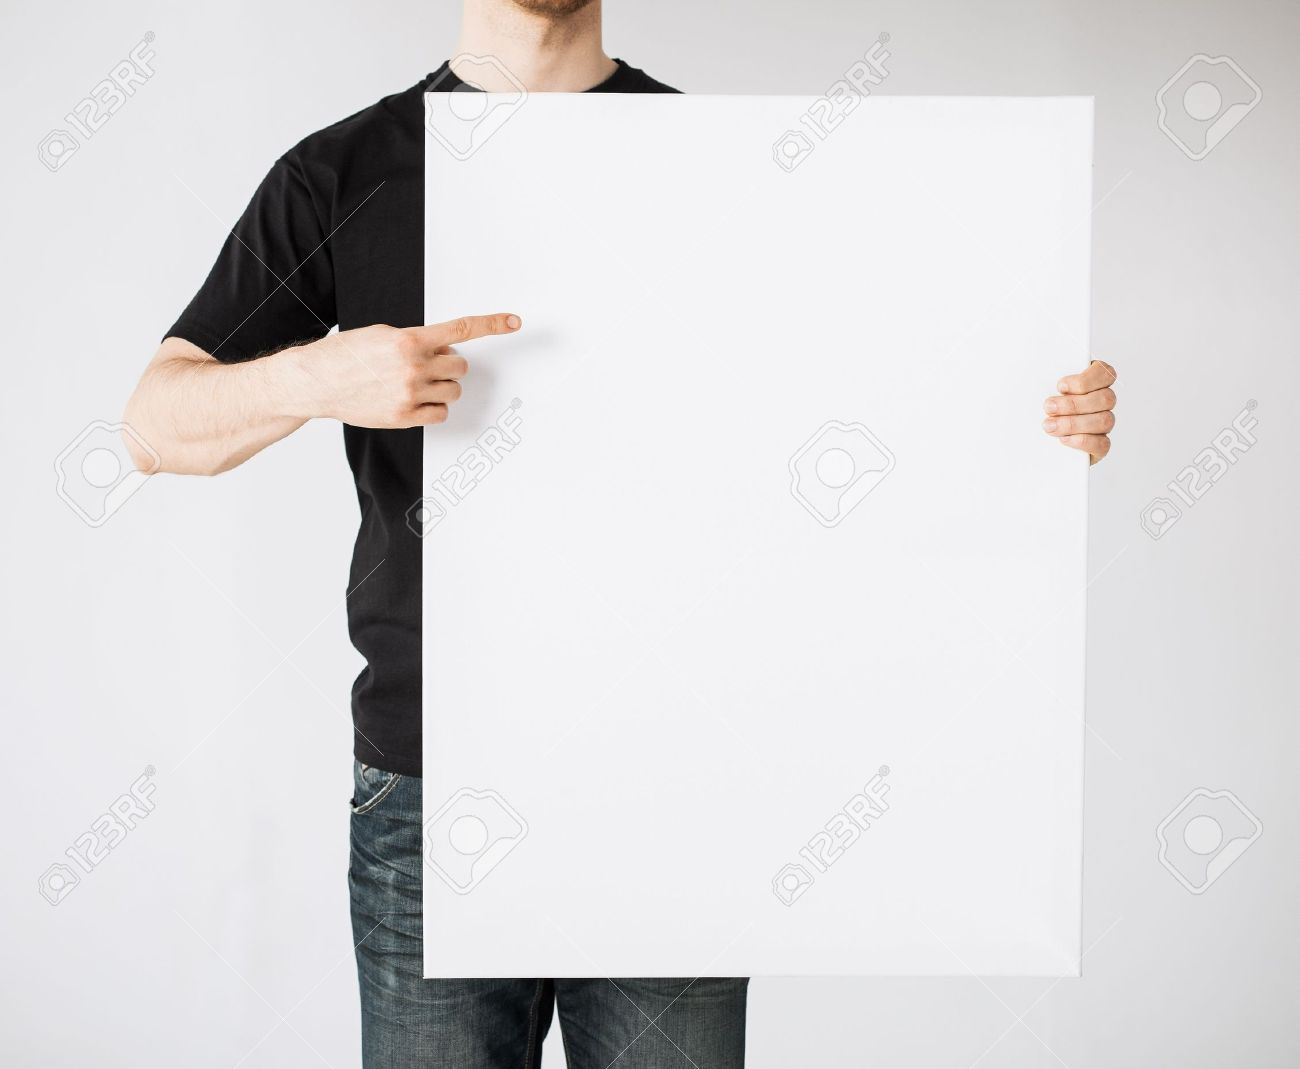 close up of man hands showing white blank board Stock Photo - 20019494